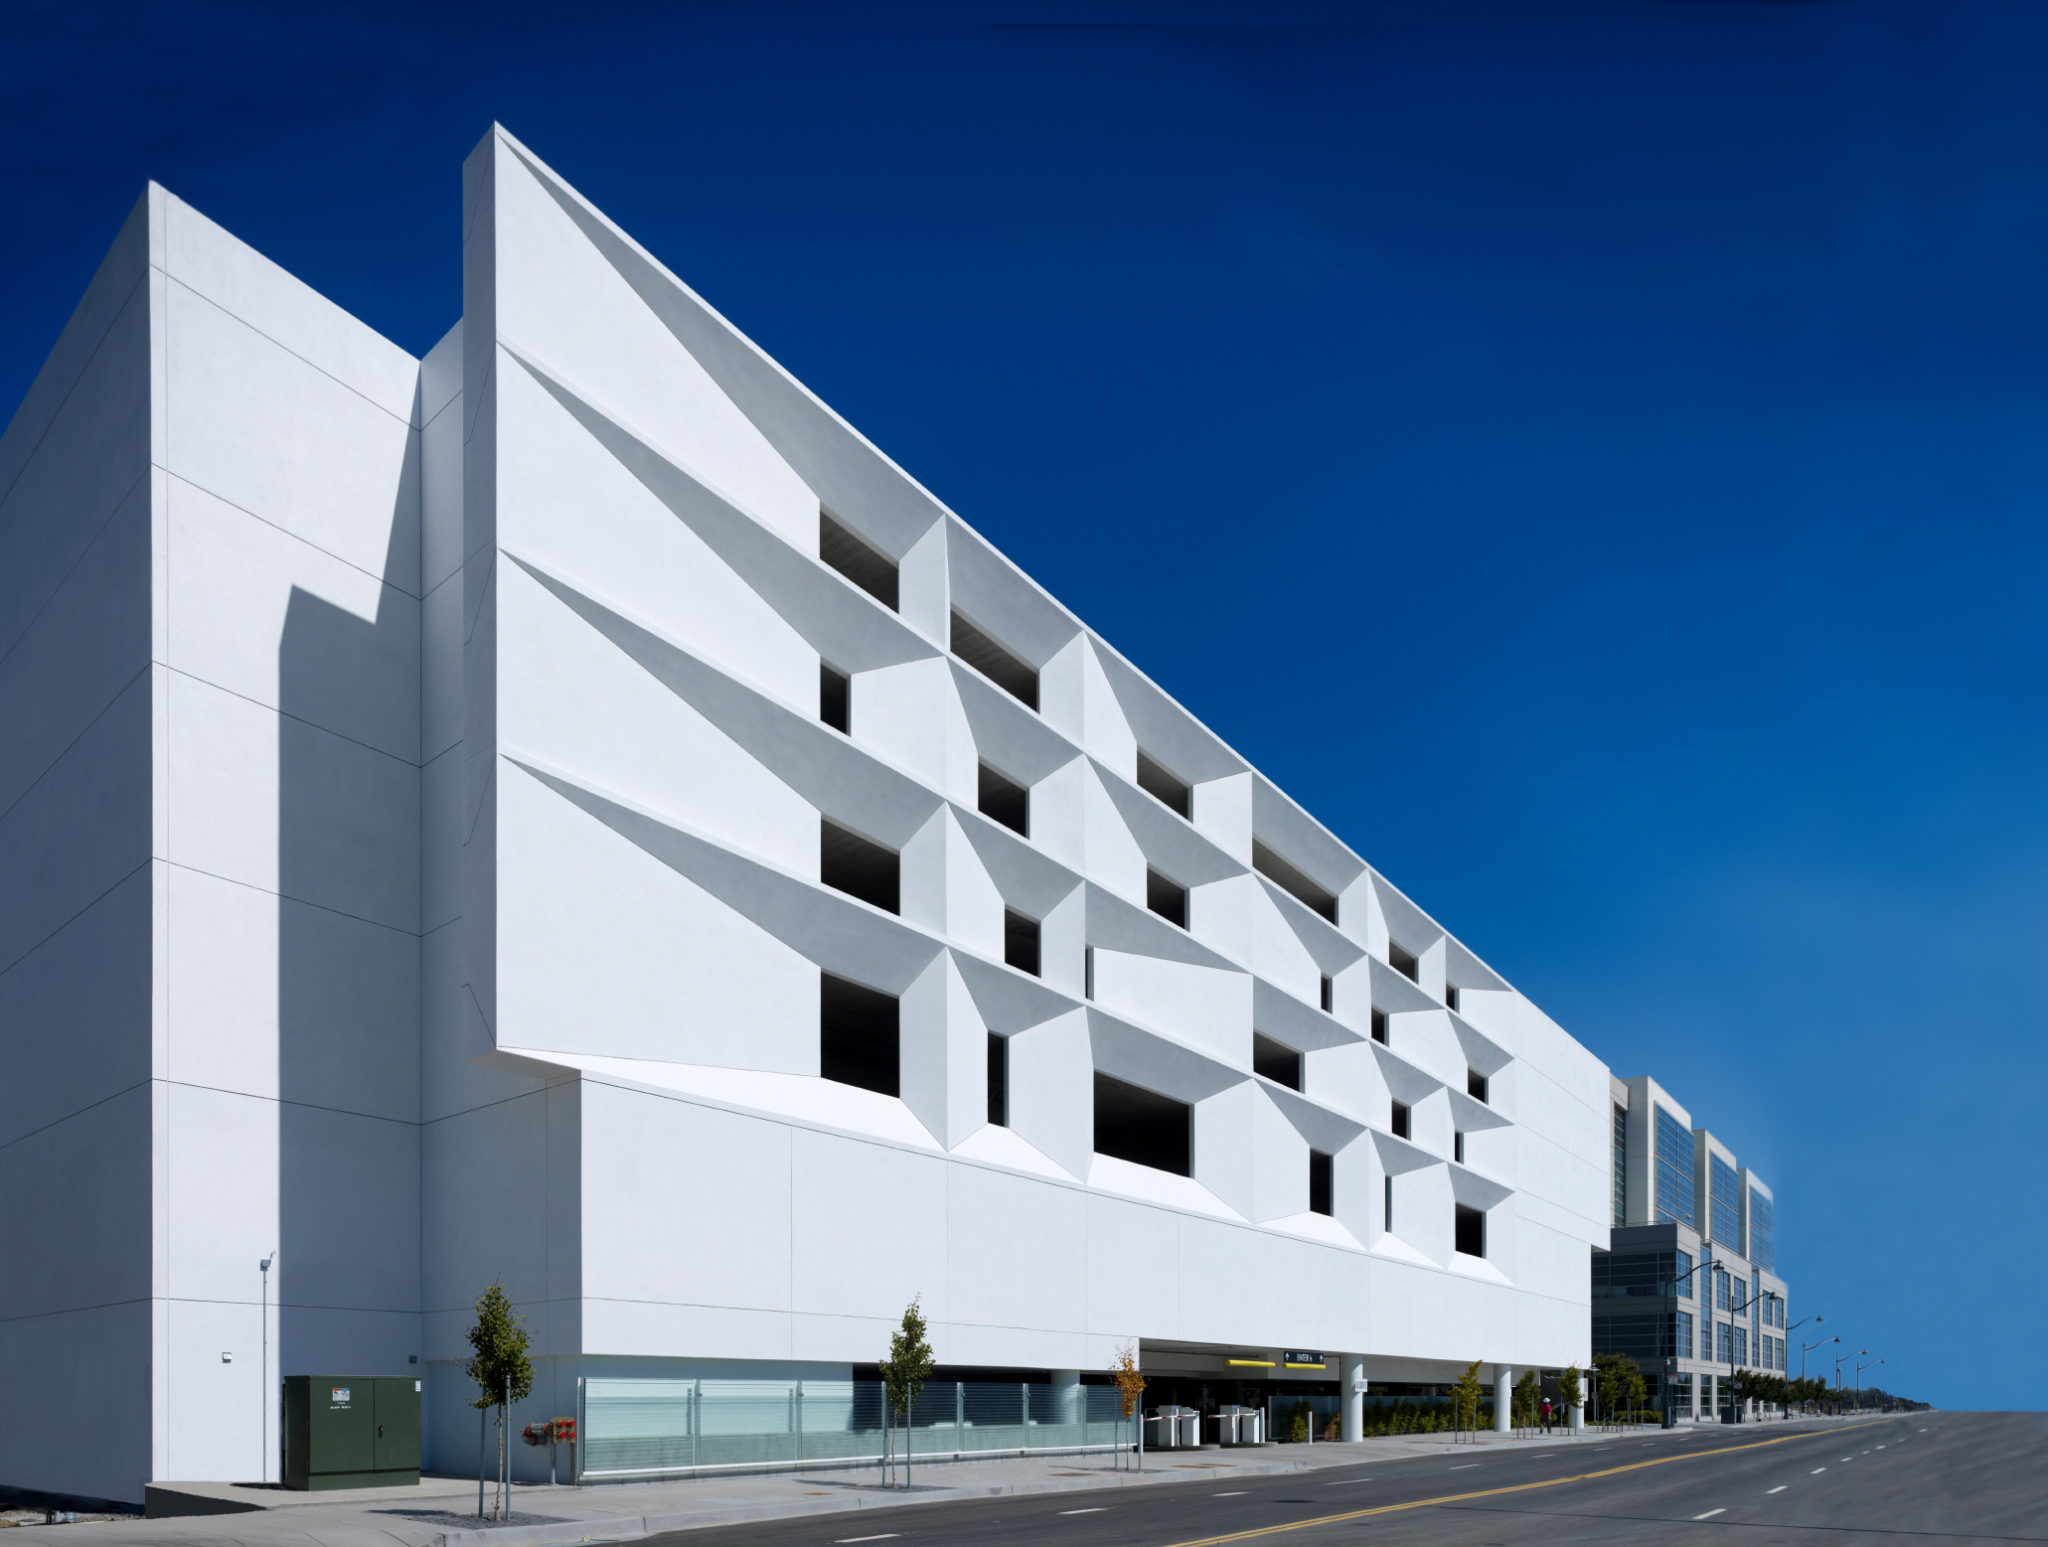 Mission Bay Parking Structure - WRNS Studio